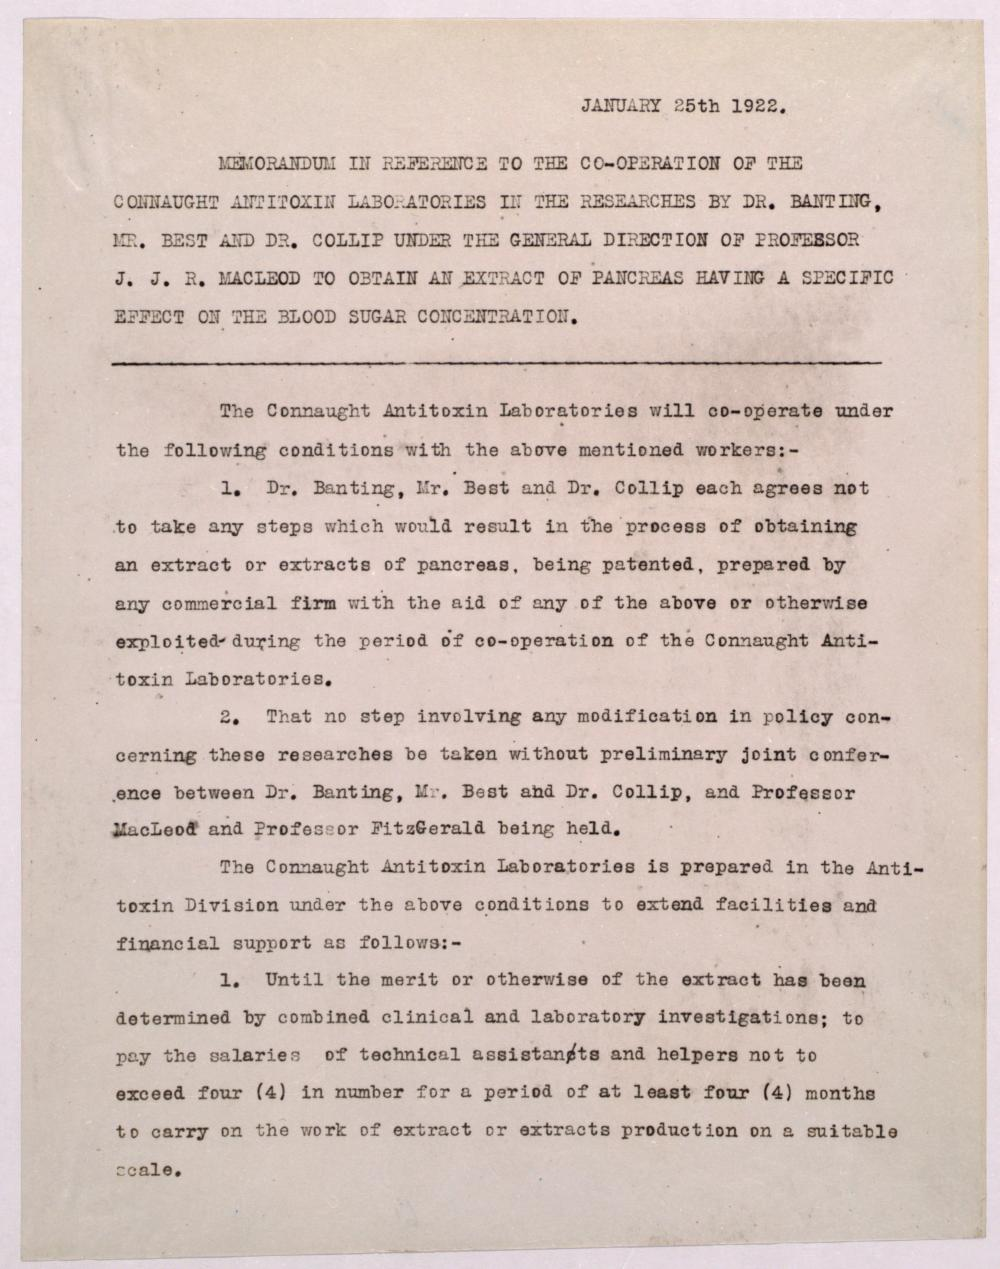 Text of the agreement made between Connaught Laboratories and Macleod, Banting, Best and Collip, dated January 25, 1922.